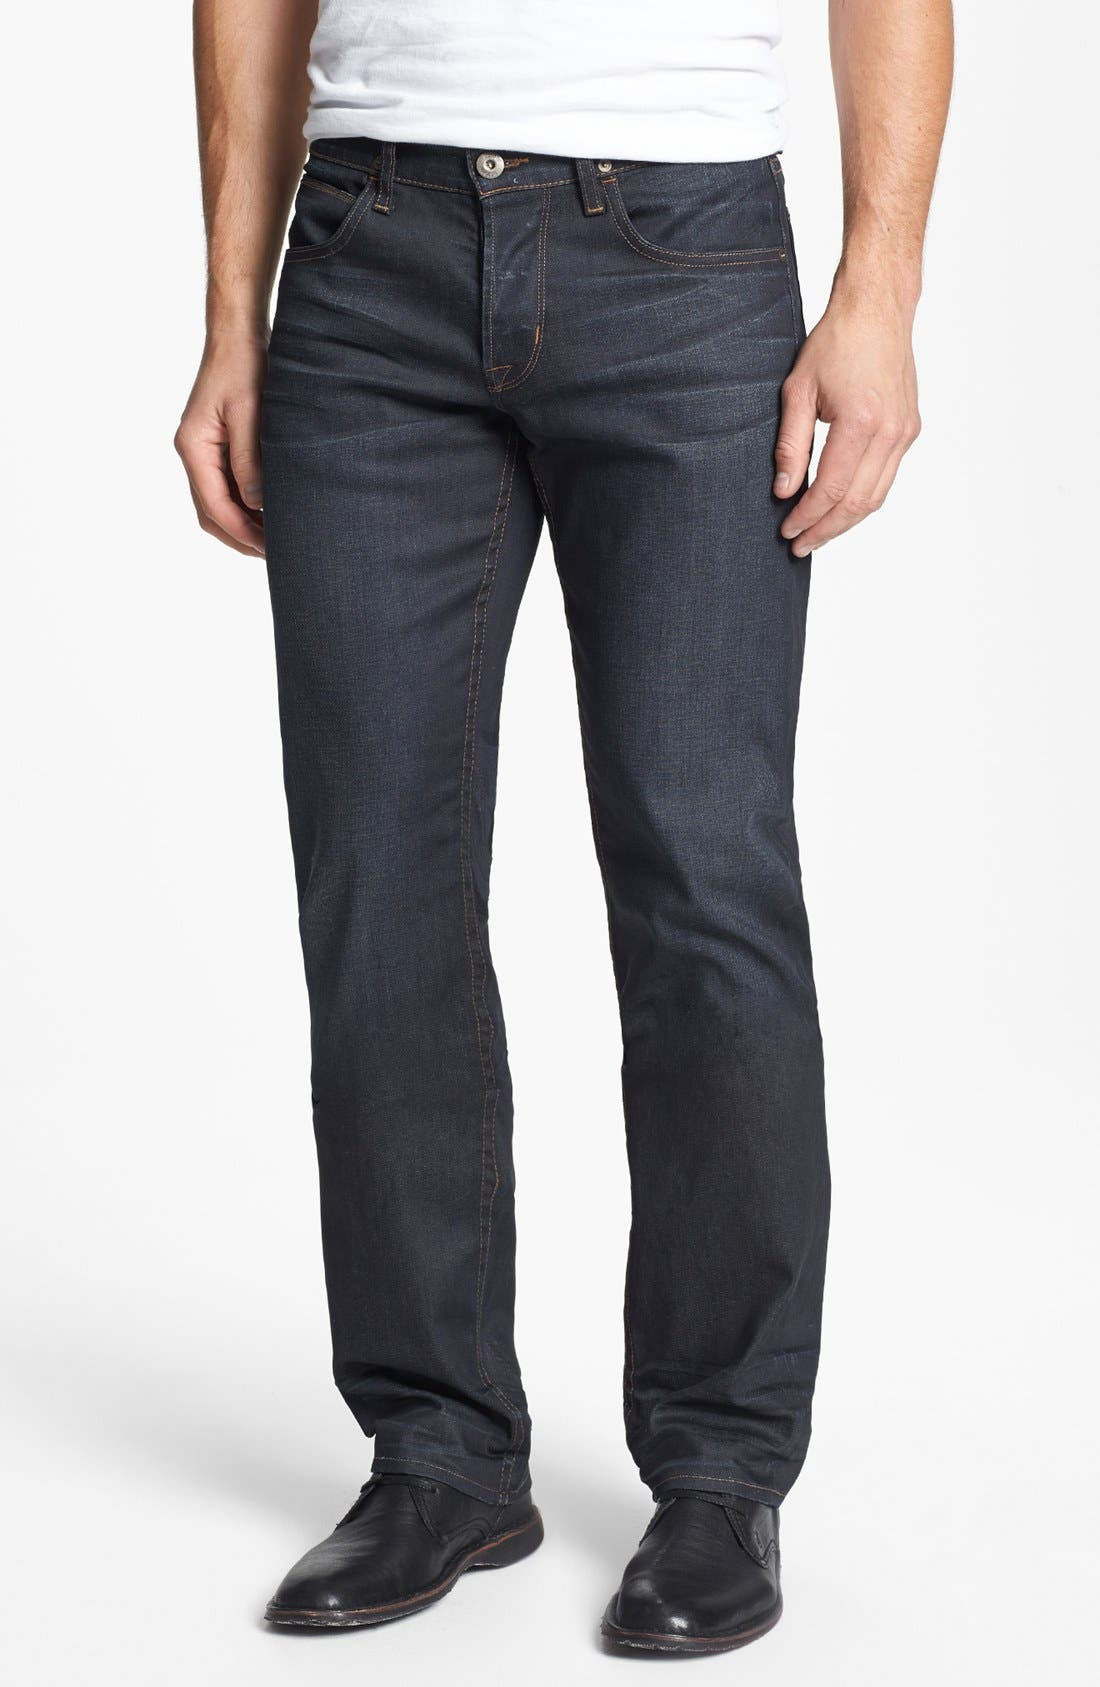 Alternate Image 1 Selected - Hudson 'Byron' Slim Straight Leg Jeans (Edges)